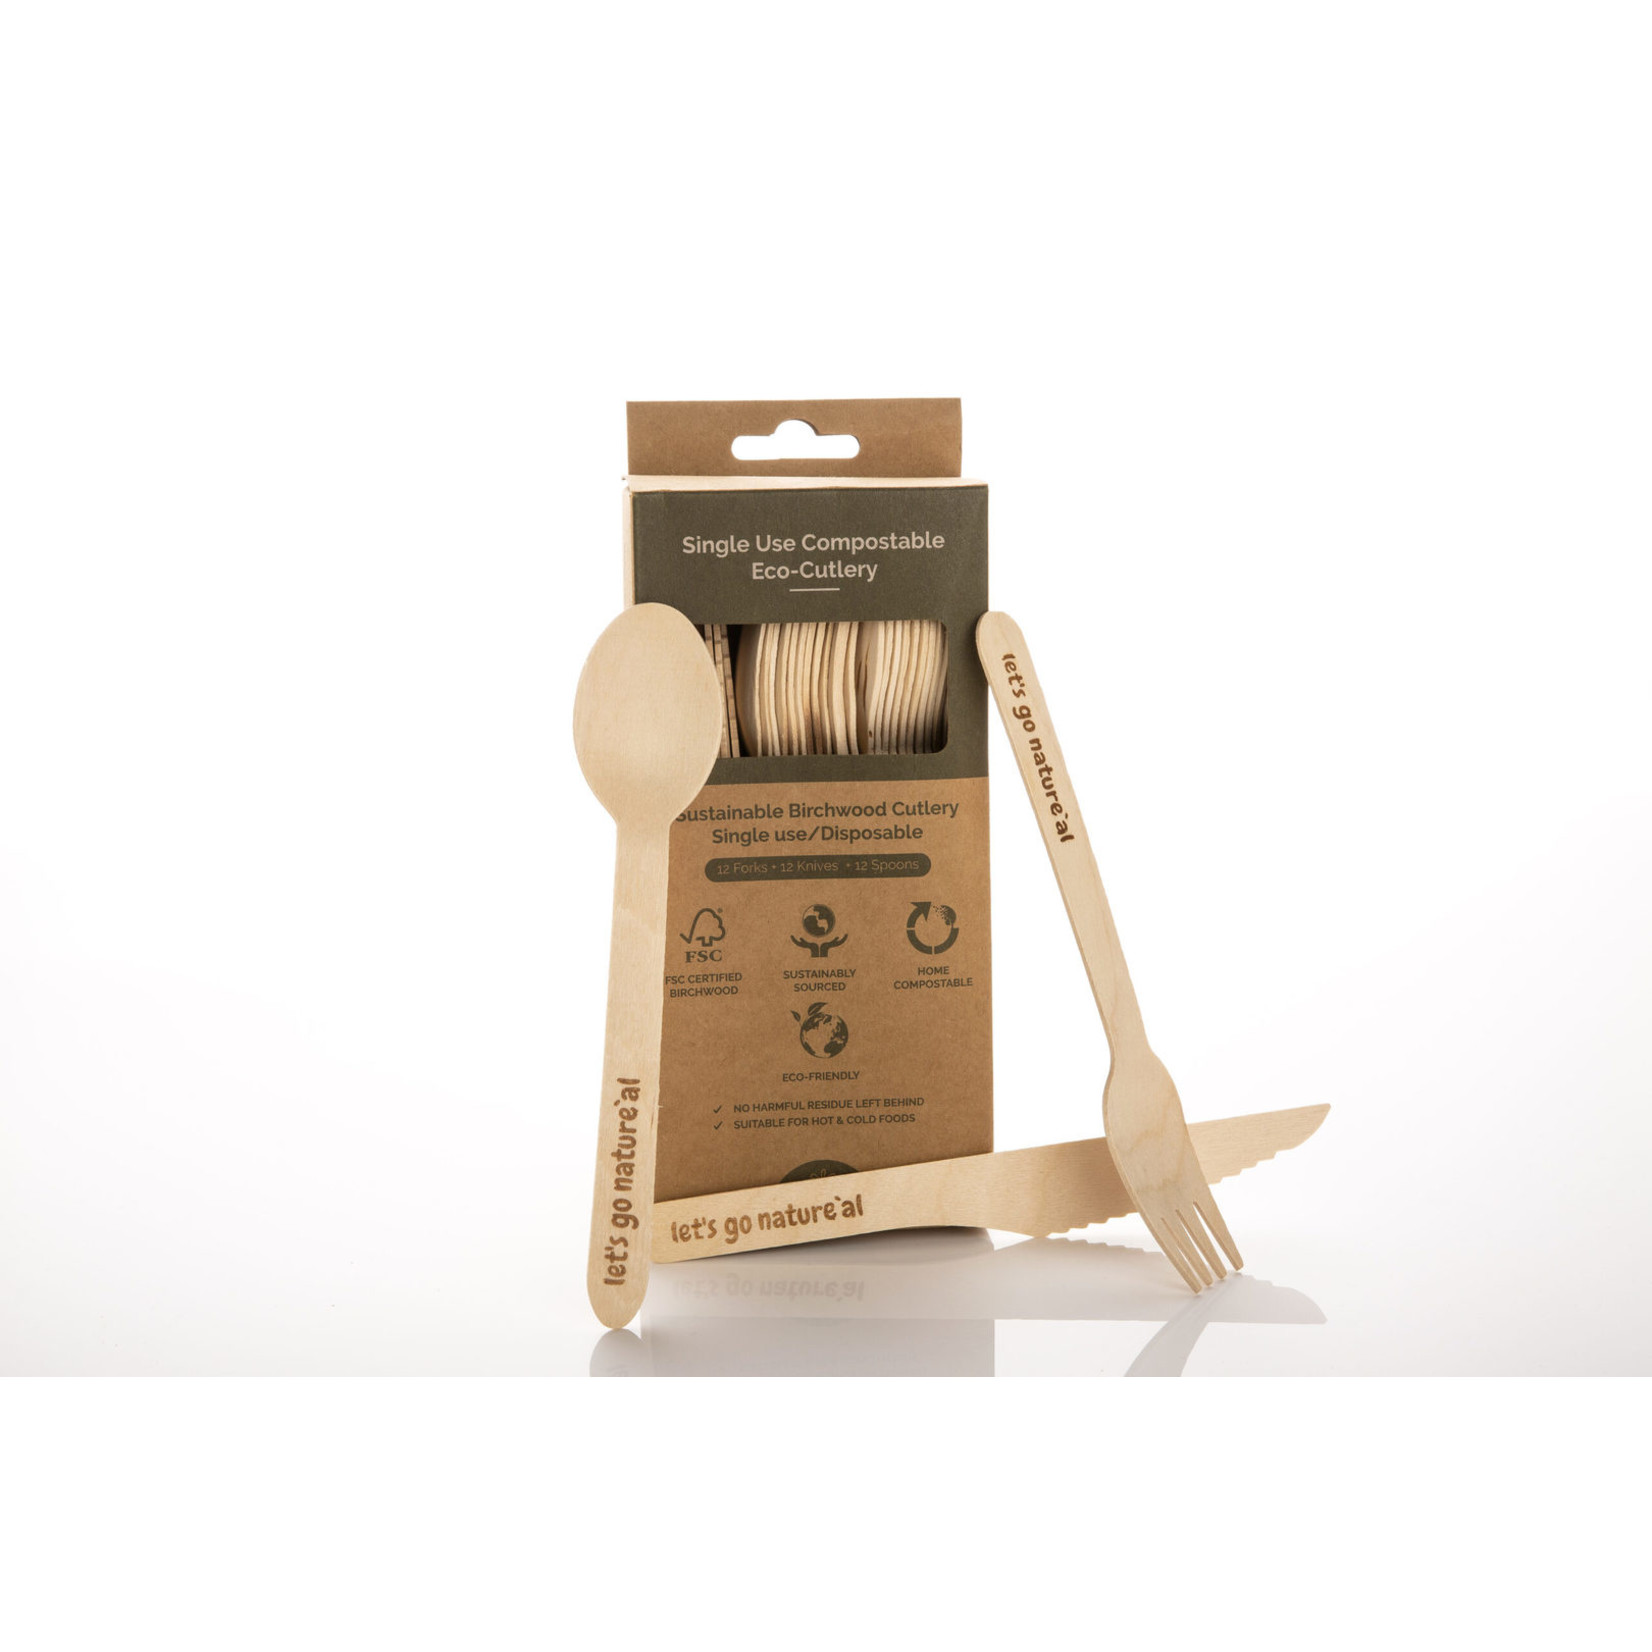 Let's Go Nature'al Let's Go Natureal Single Use Cutlery 36pk